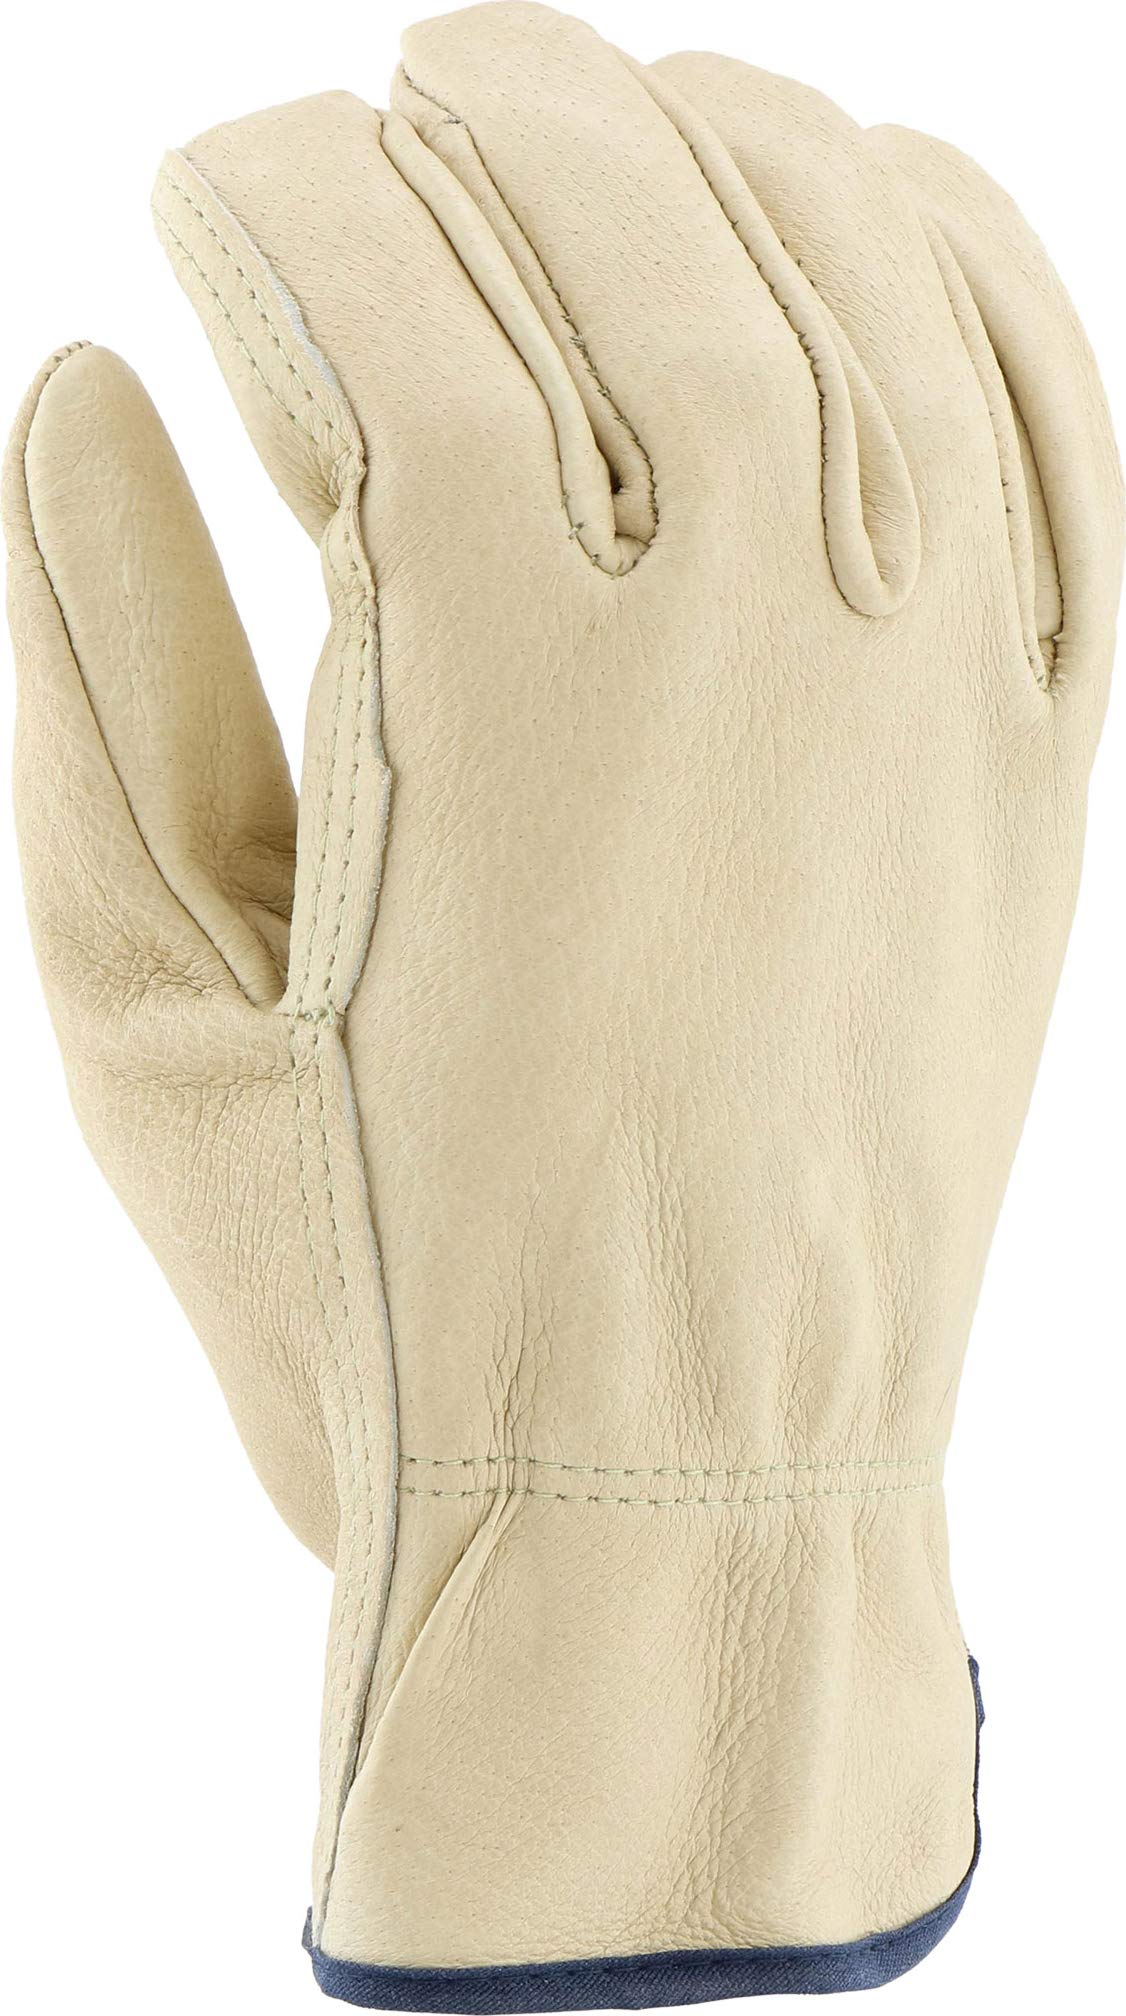 West Chester 994 Select Grain Pigskin Leather Driver Work Gloves: Straight Thumb, Large, 12 Pairs by West Chester (Image #7)